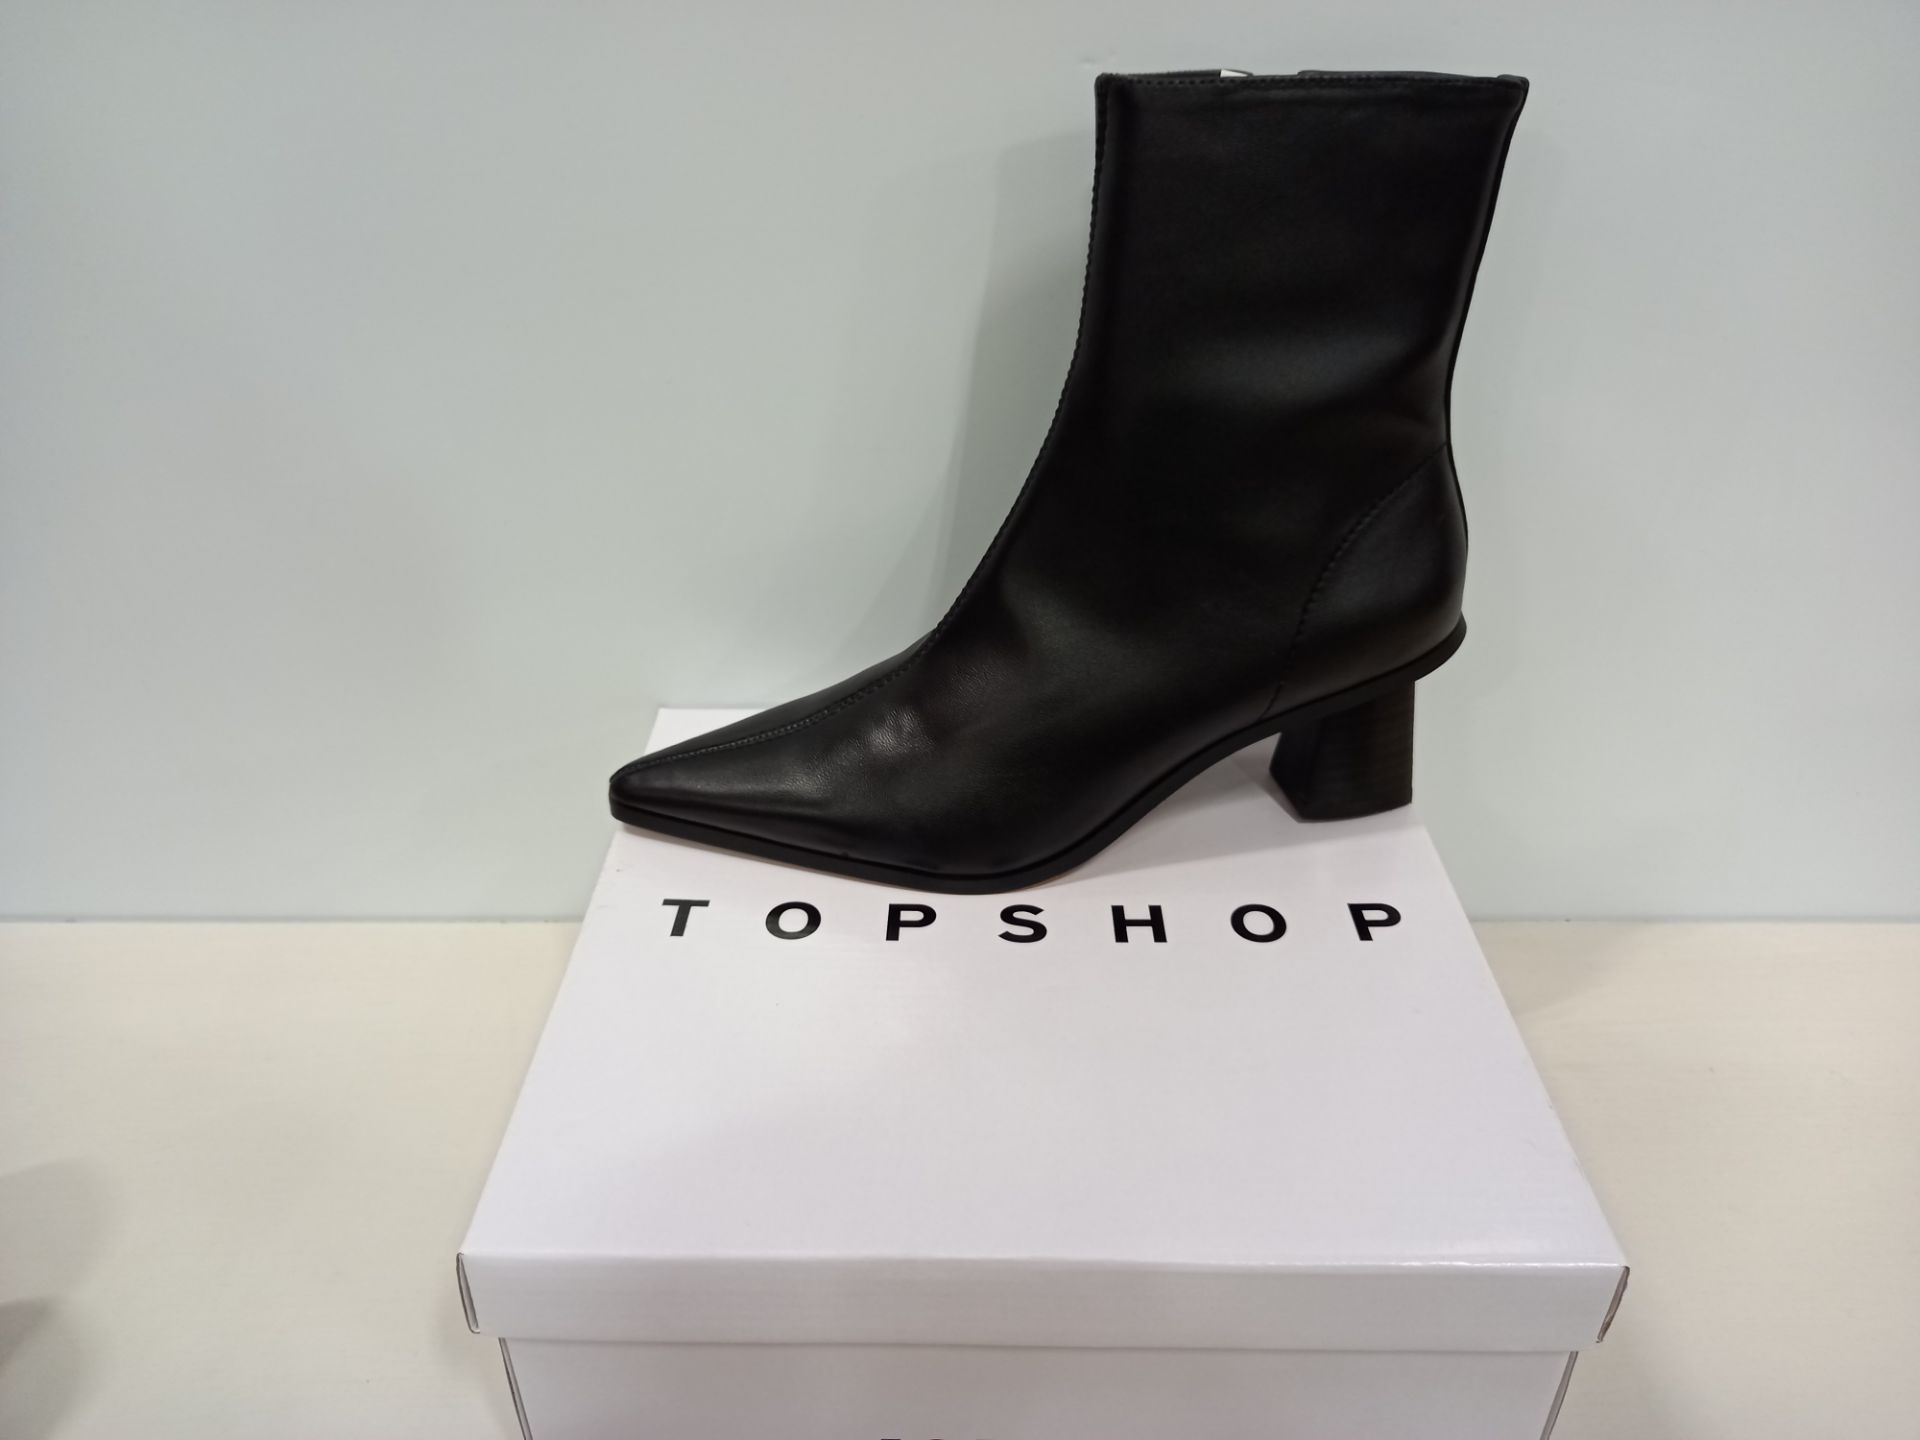 15 X BRAND NEW TOPSHOP SHOES - 10 X HARLOW BLACK SHOES UK SIZE 5 RRP £39.00 AND 5 X MAILE BLACK